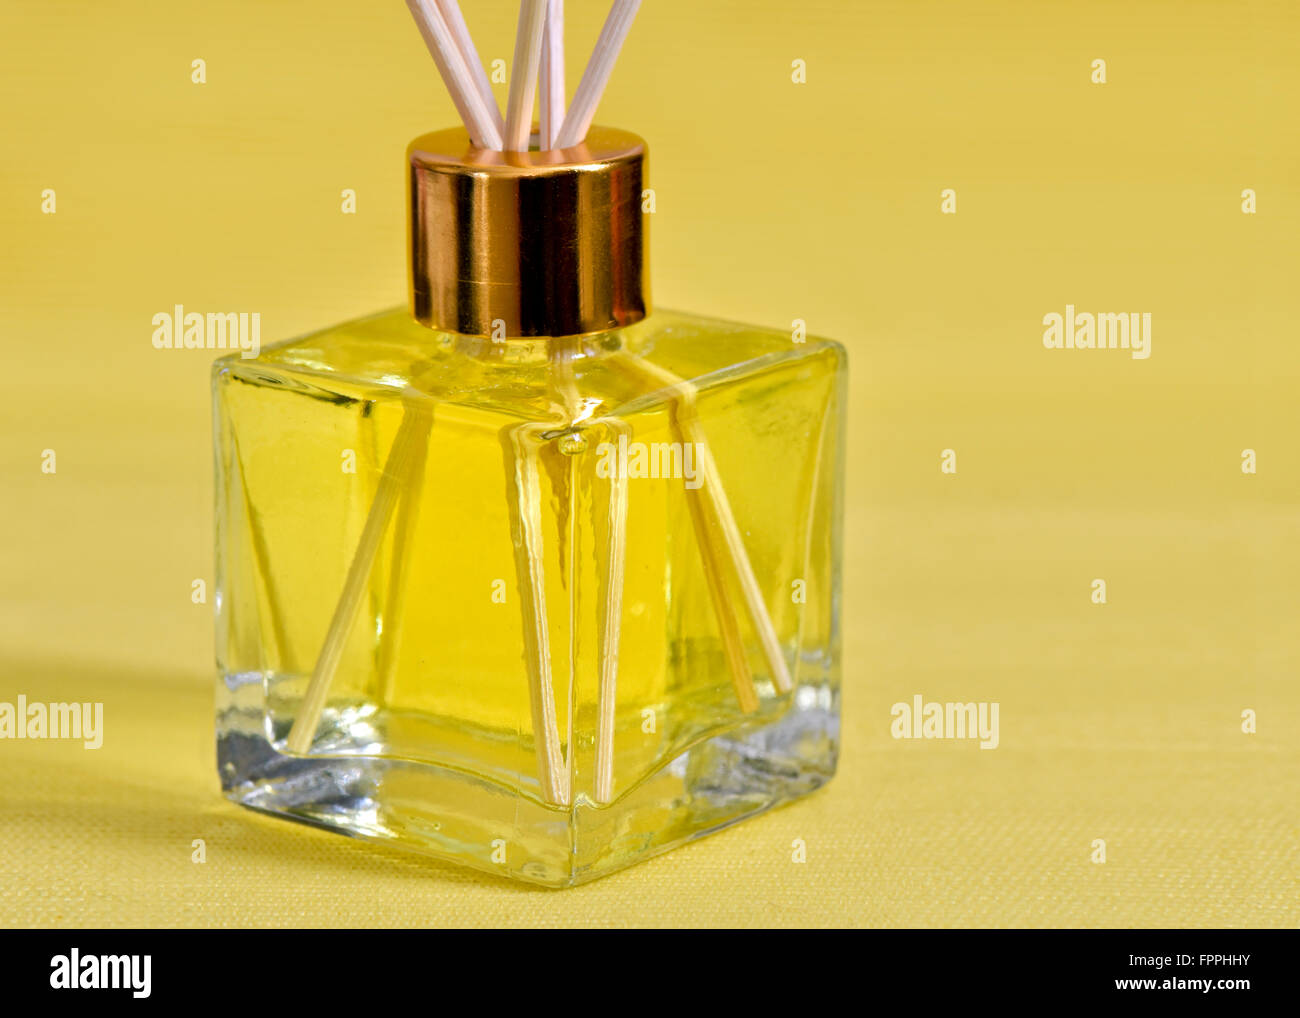 Reed diffuser room scenter on a yellow background - Stock Image